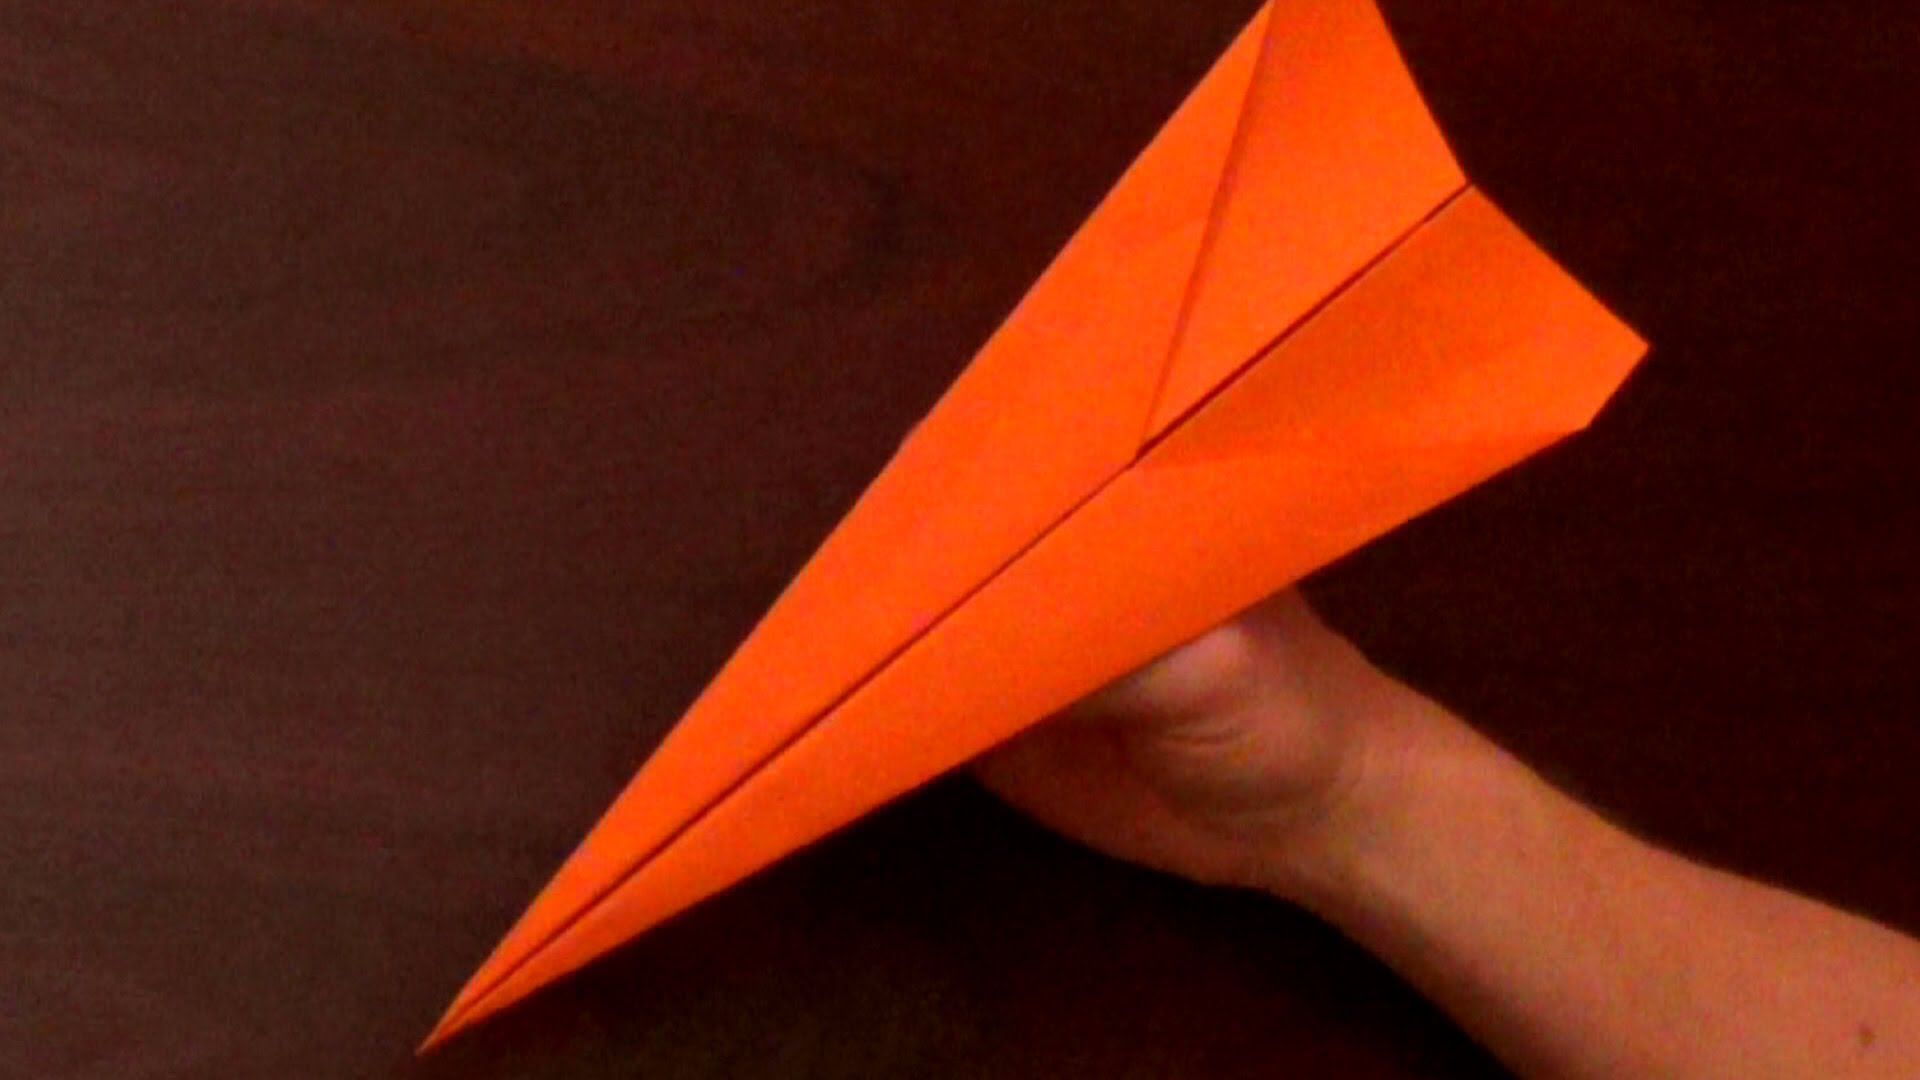 Simple Origami Airplanes Mini Kit - Tuttle Publishing | 1080x1920